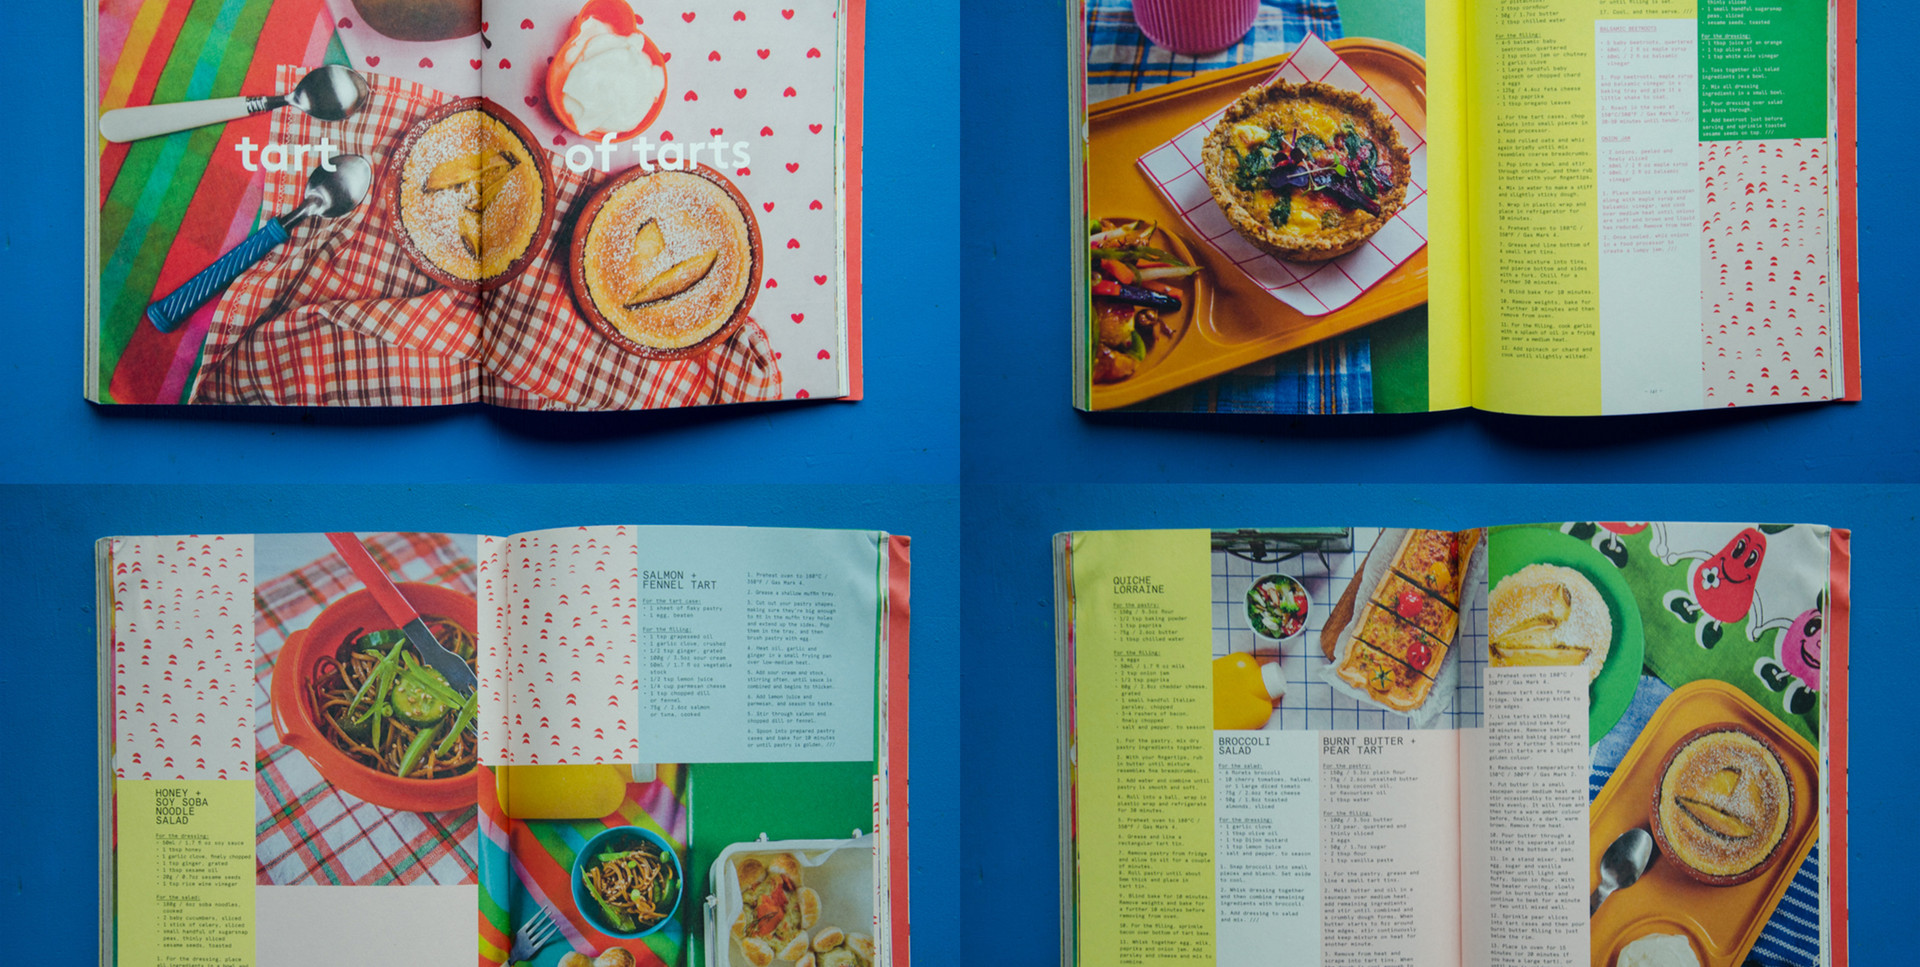 Food writing + co-styling